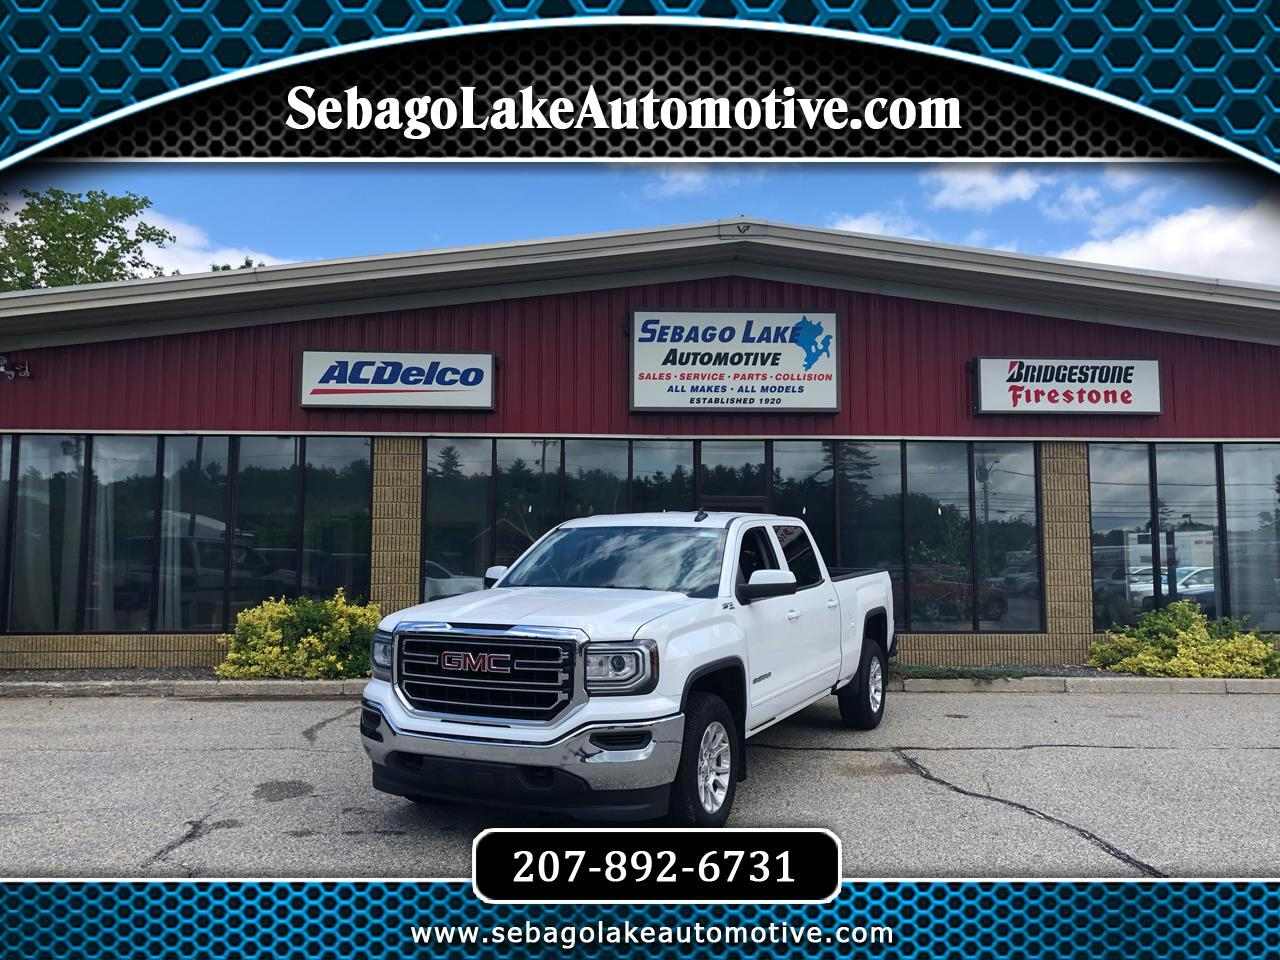 2018 GMC Sierra 1500 SLE Crew Cab Long Box 4WD